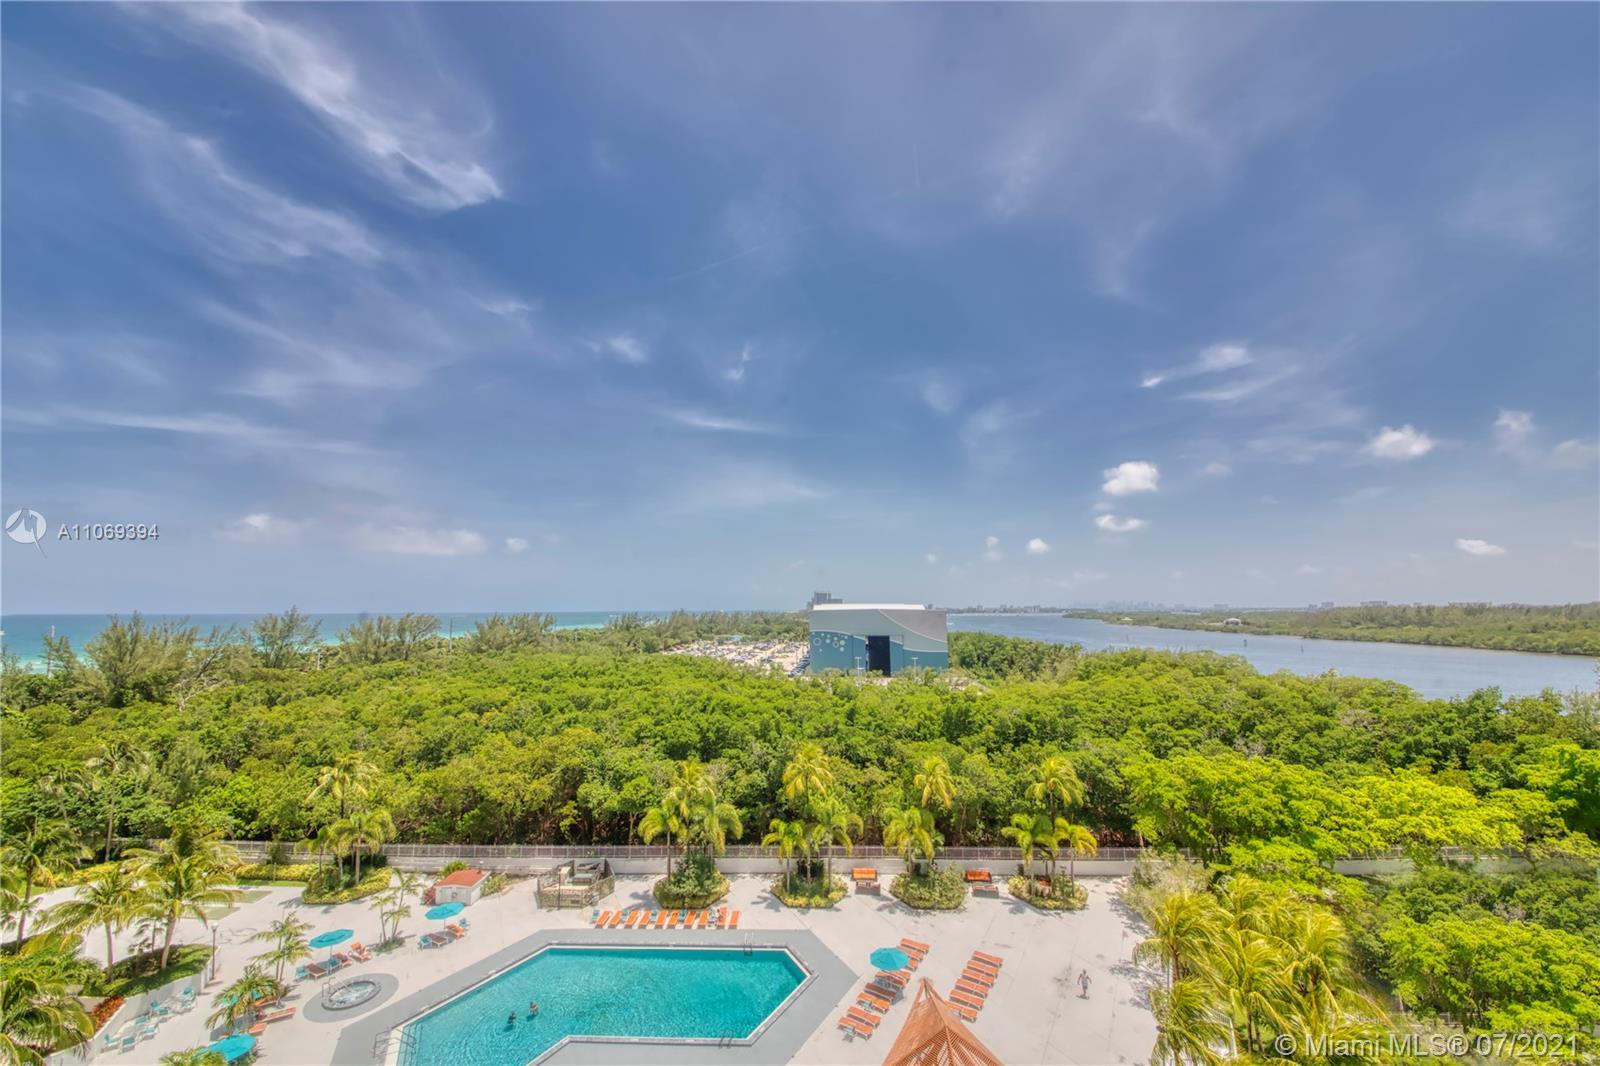 Magnificent views of the Bay, Pool & Ocean from this beautiful 2Beds/2baths unit. Oversized balcony